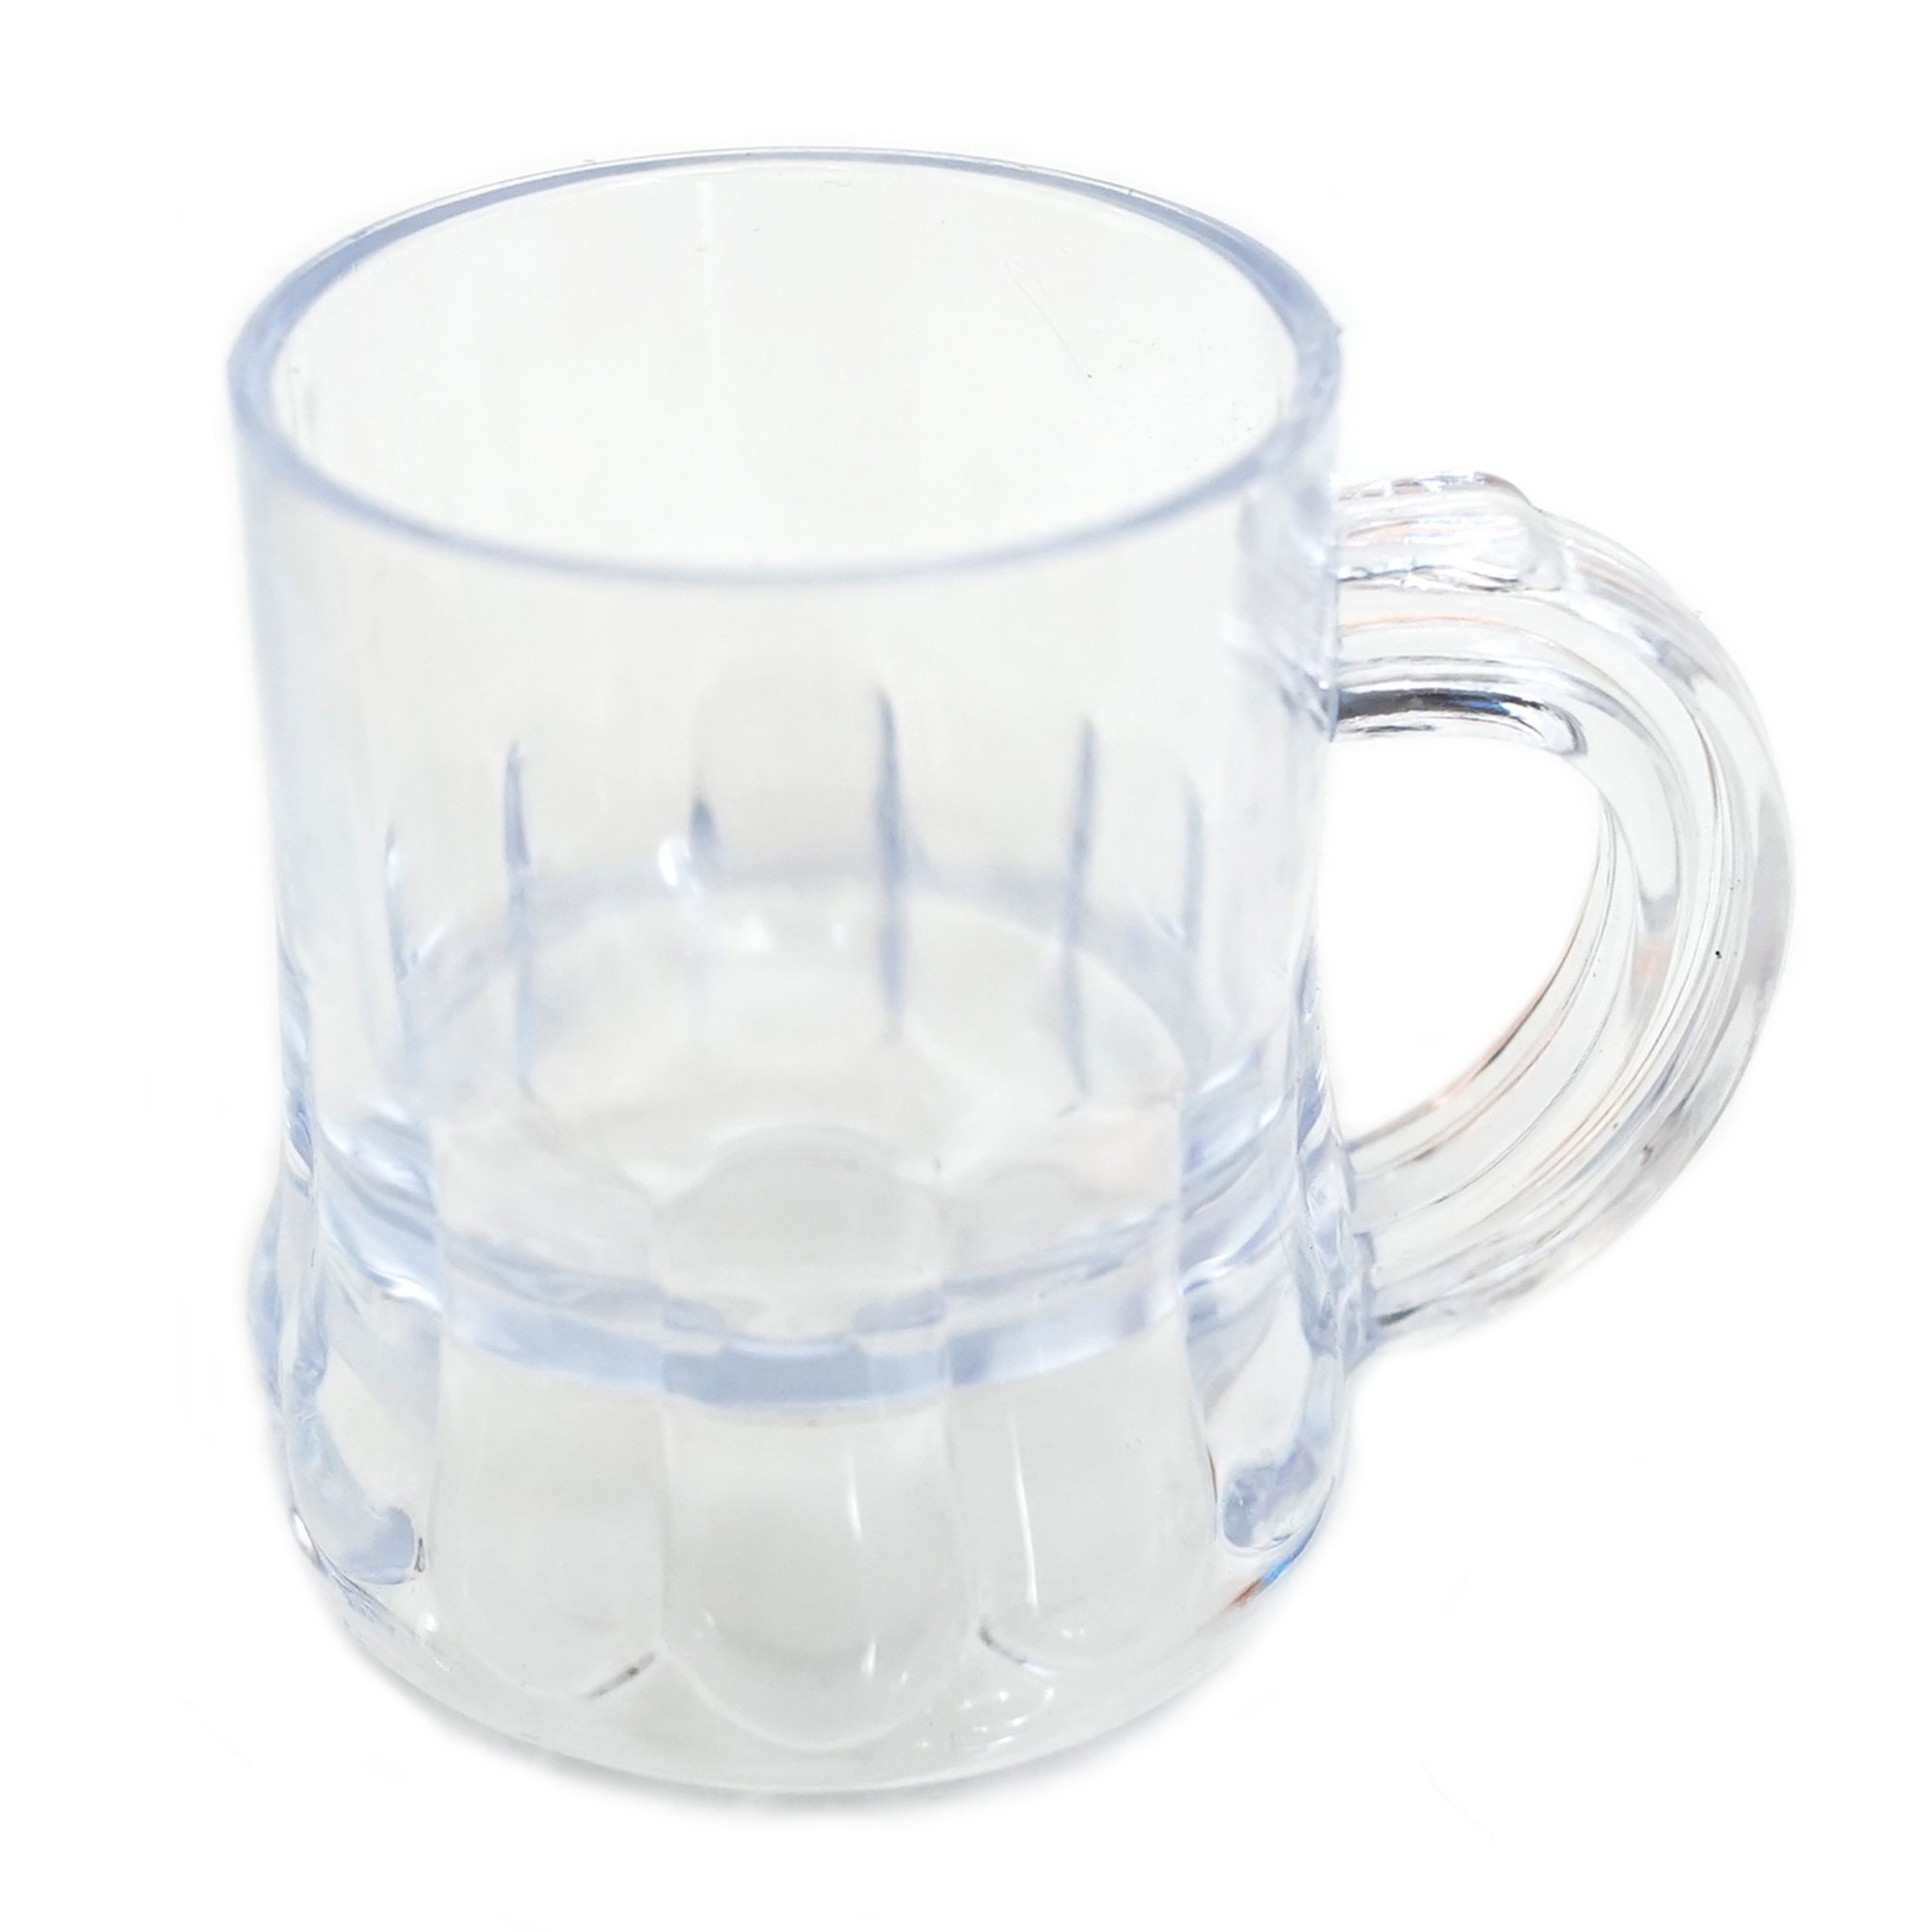 Mini Clear Plastic Beer Mug Shot Glasses- 1.75'' Tall (36 Count) by New Paradise